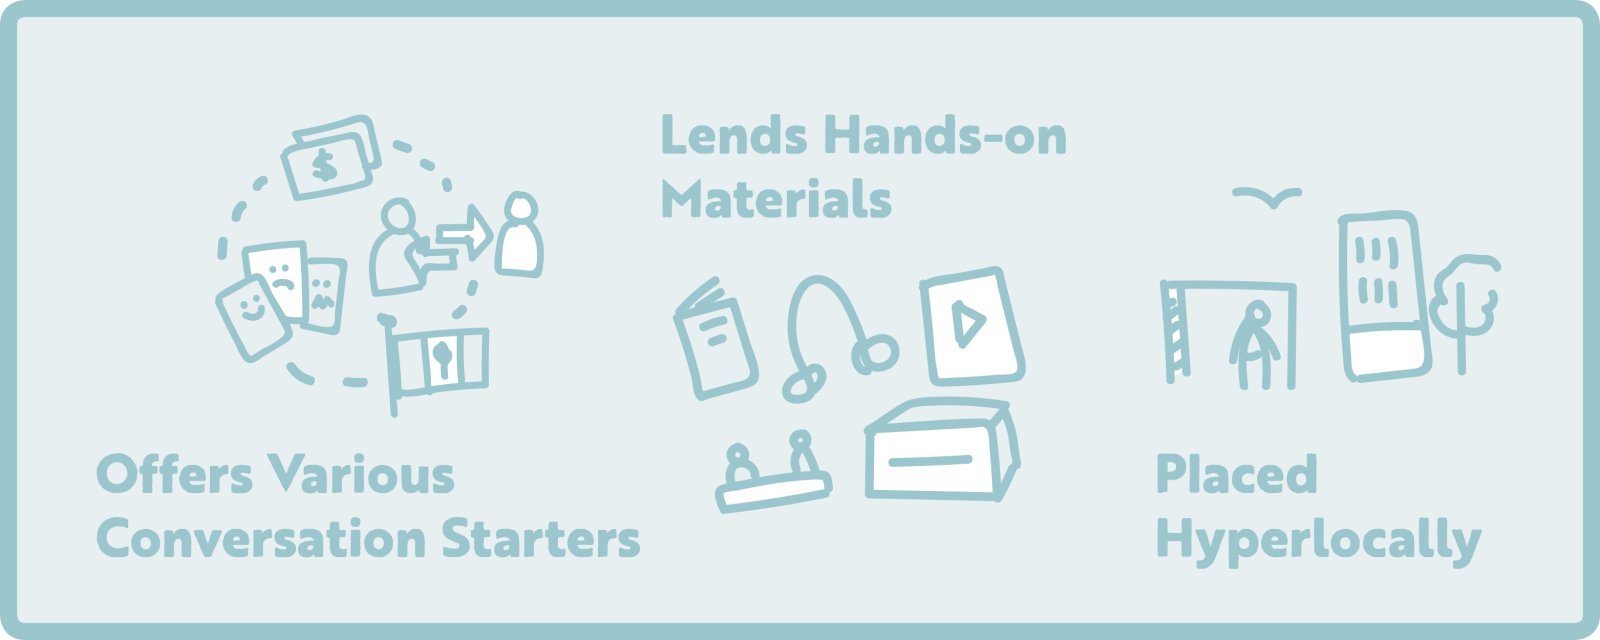 Offers Various Conversation Starts, Lends Hand on Materials, Placed Hyperlocally